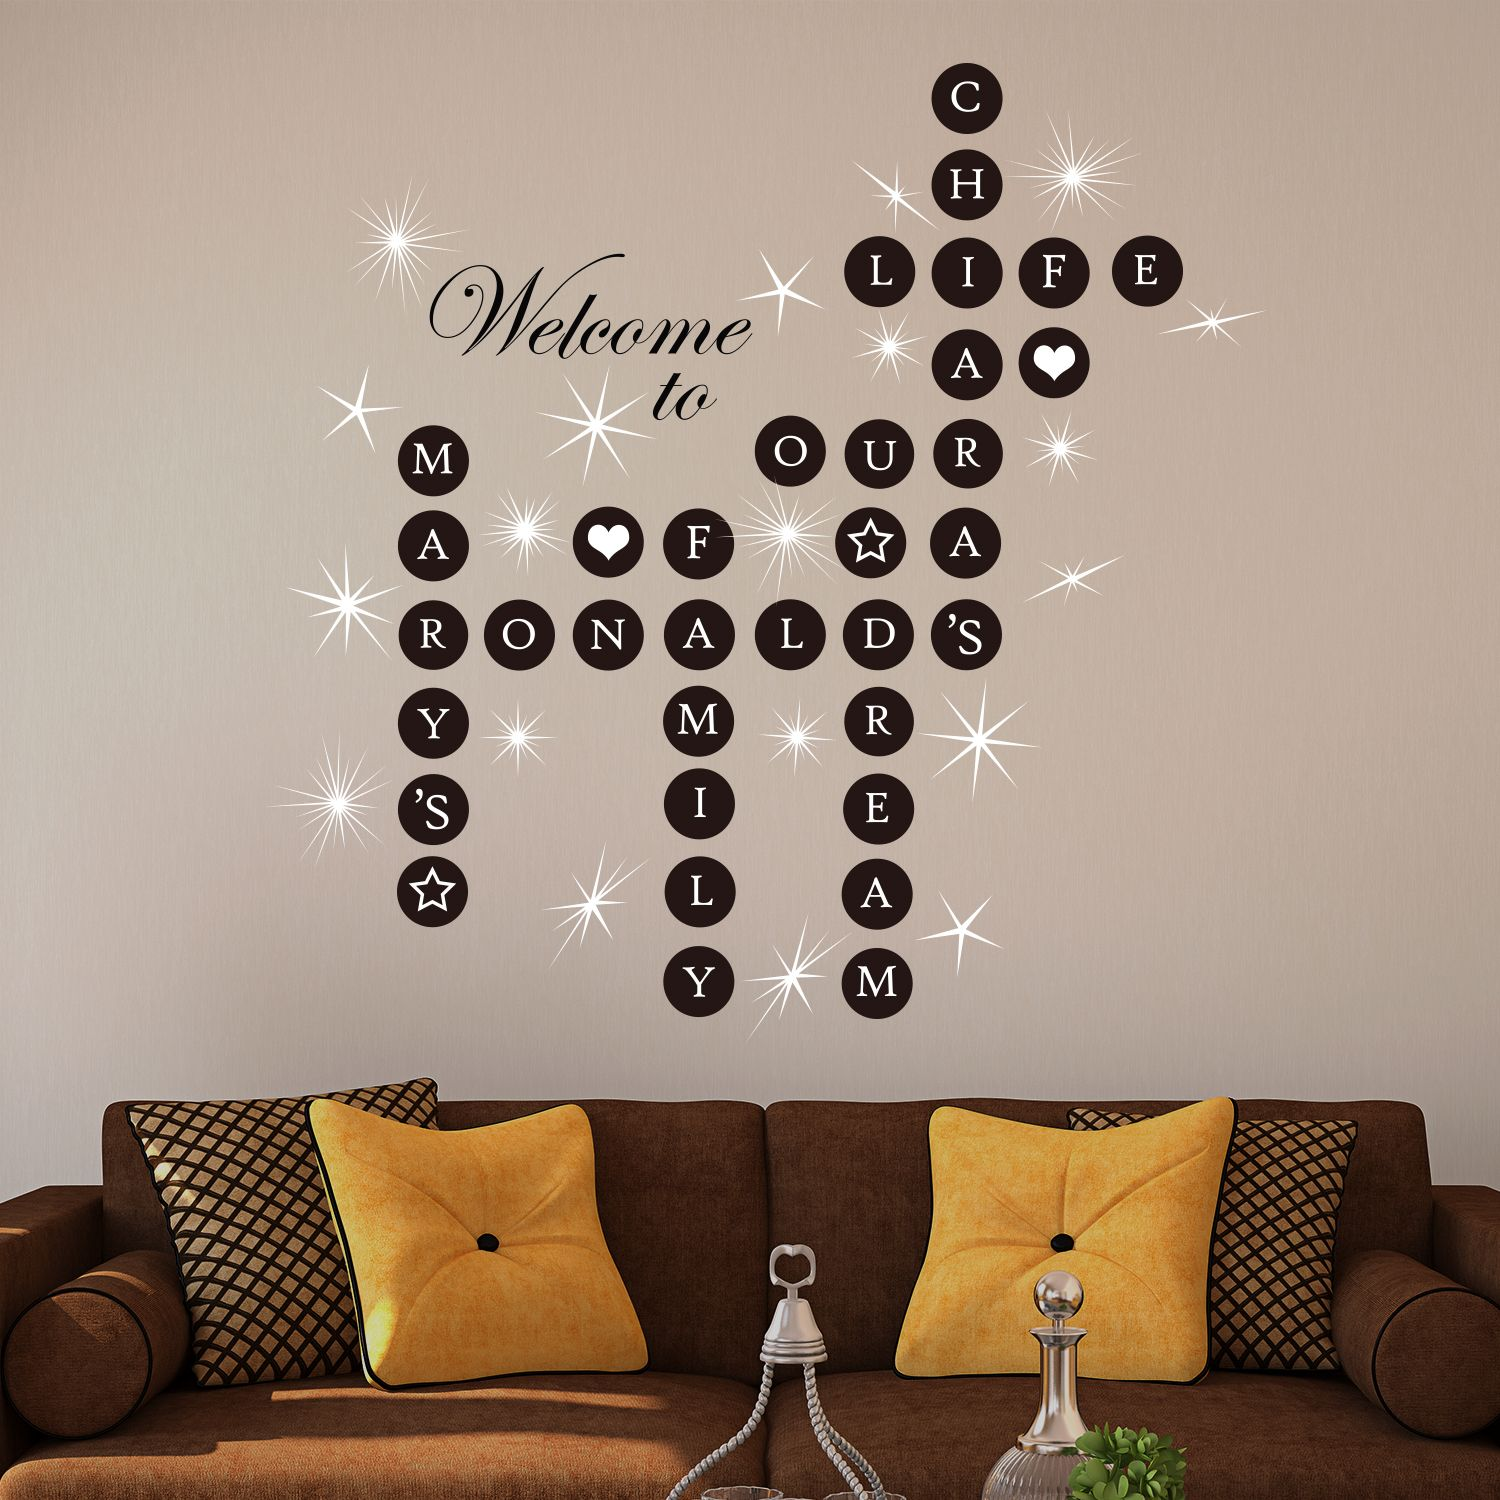 Walplus Welcome Home Puzzle Wall Sticker Wall Decal Decoration with Swarovski Crystals